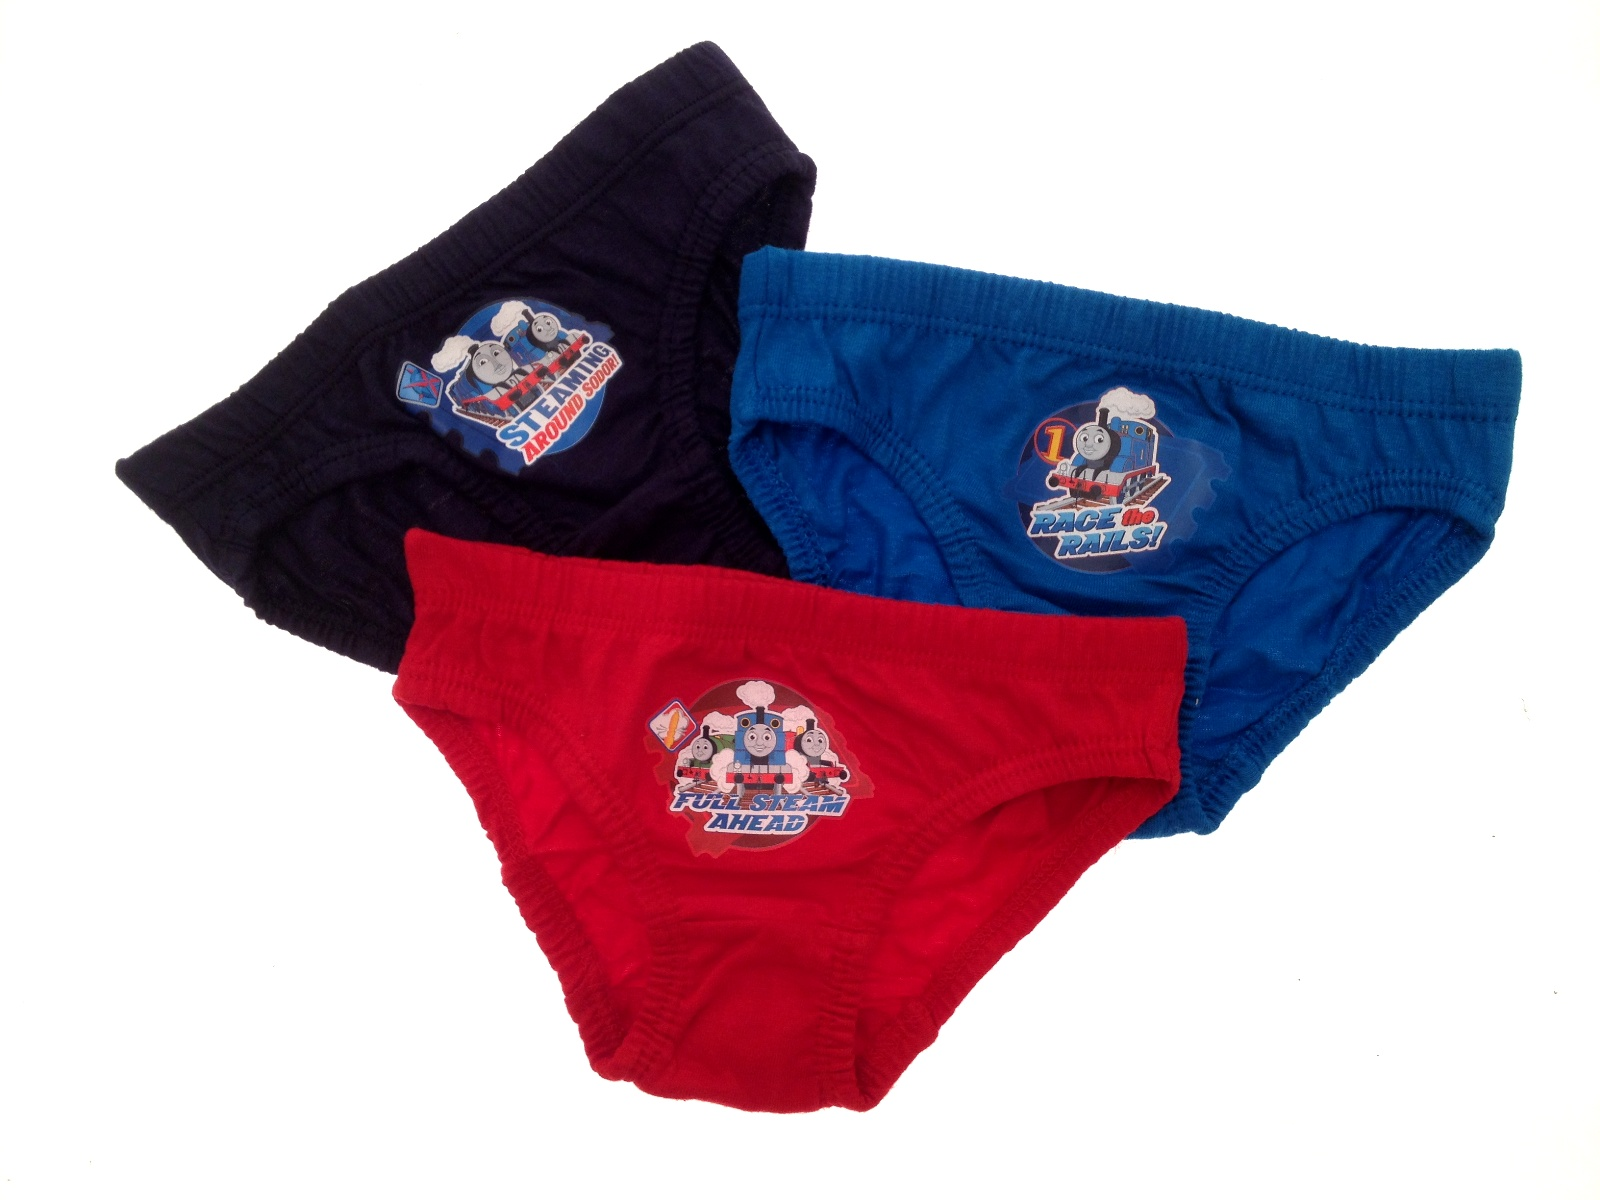 Kids Boys 3 Pack Thomas The Tank Engine Underwear Pants ...